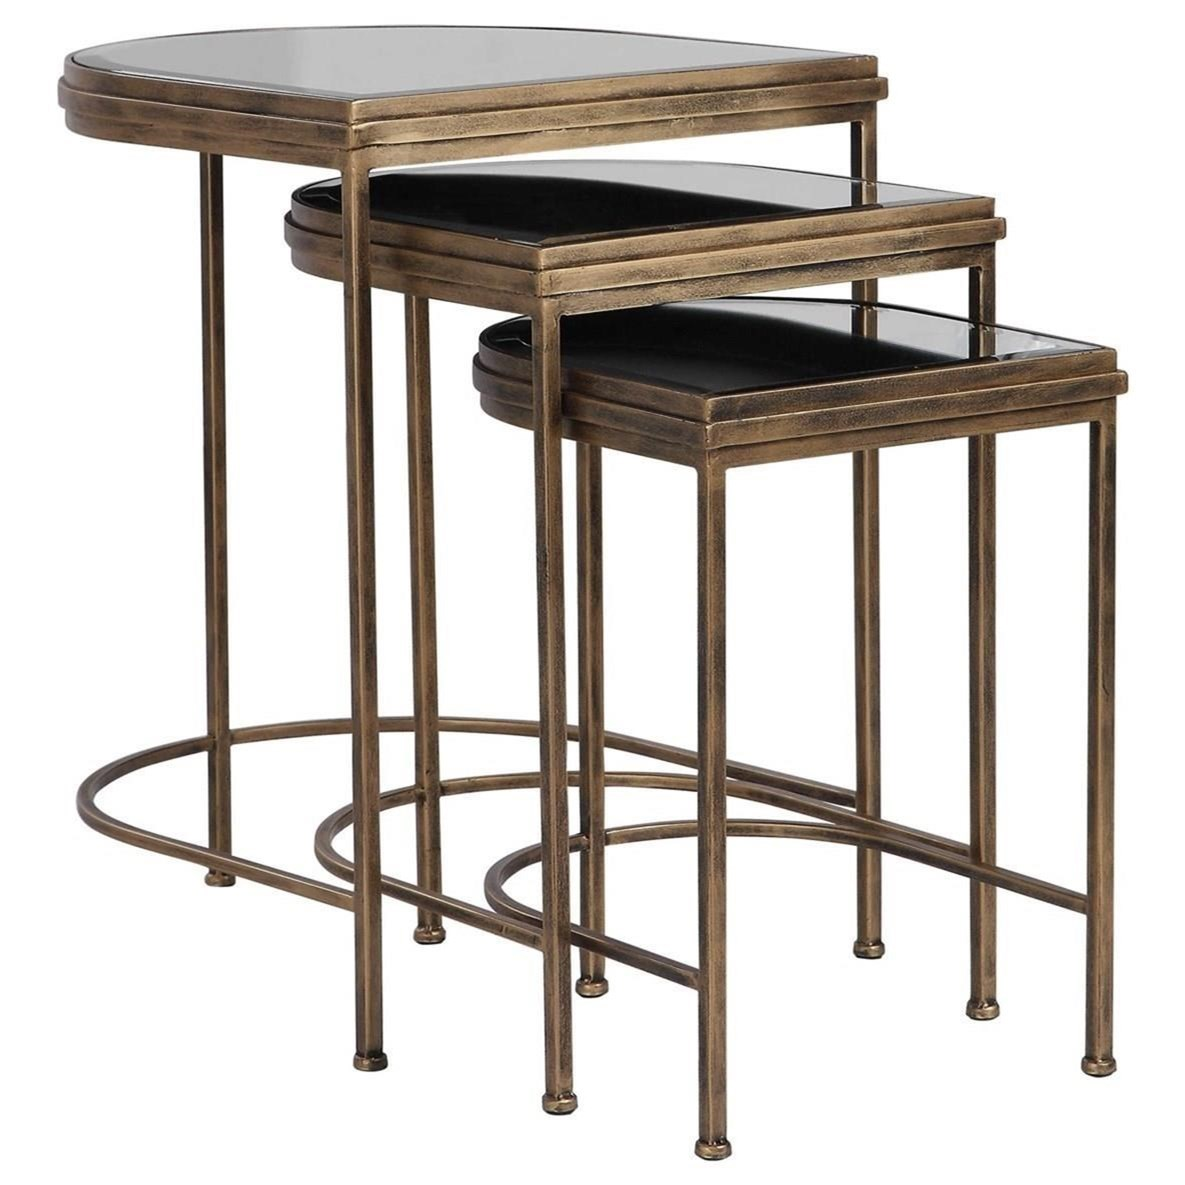 Accent Furniture - Occasional Tables India Nesting Tables, Set/3 by Uttermost at Mueller Furniture